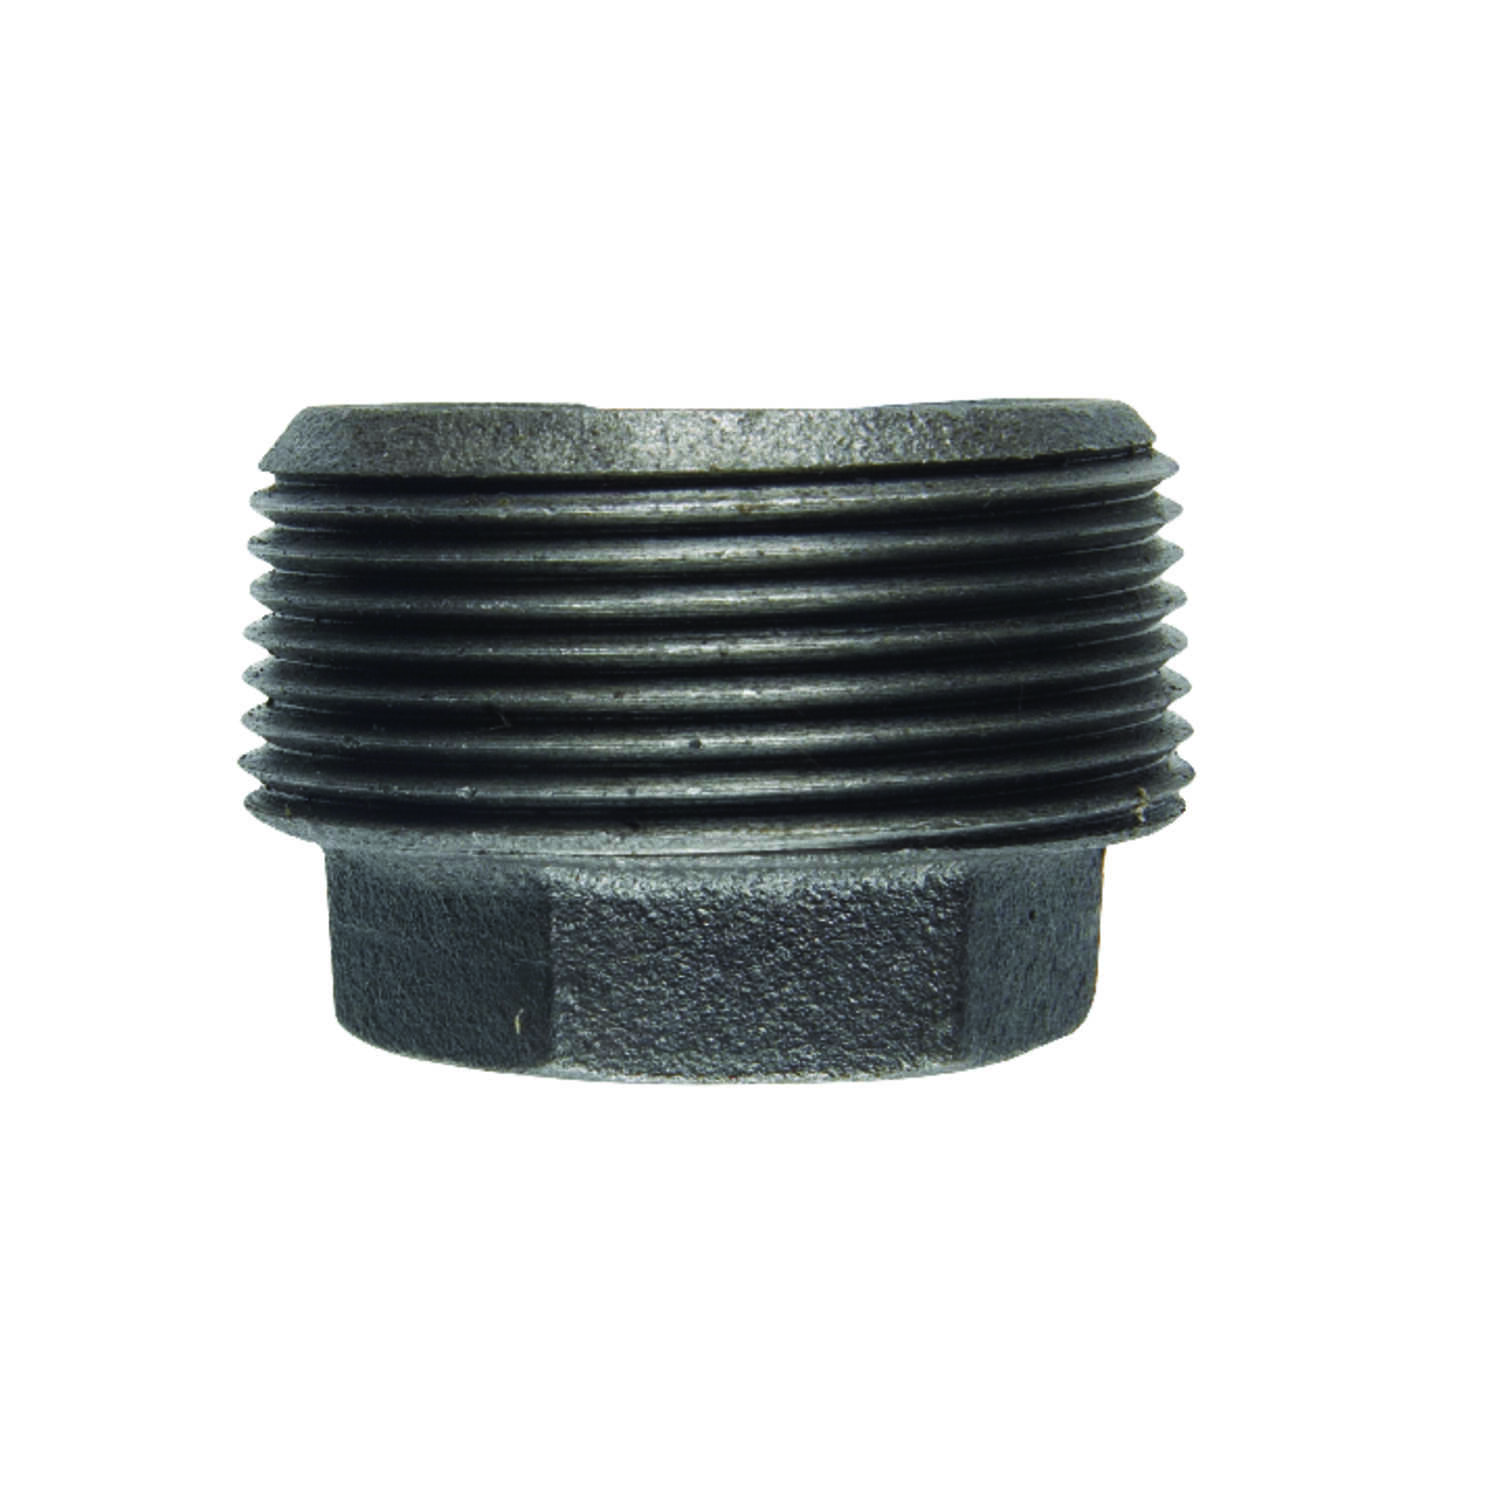 BK Products  1-1/2 in. MPT   x 3/4 in. Dia. FPT  Black  Malleable Iron  Hex Bushing